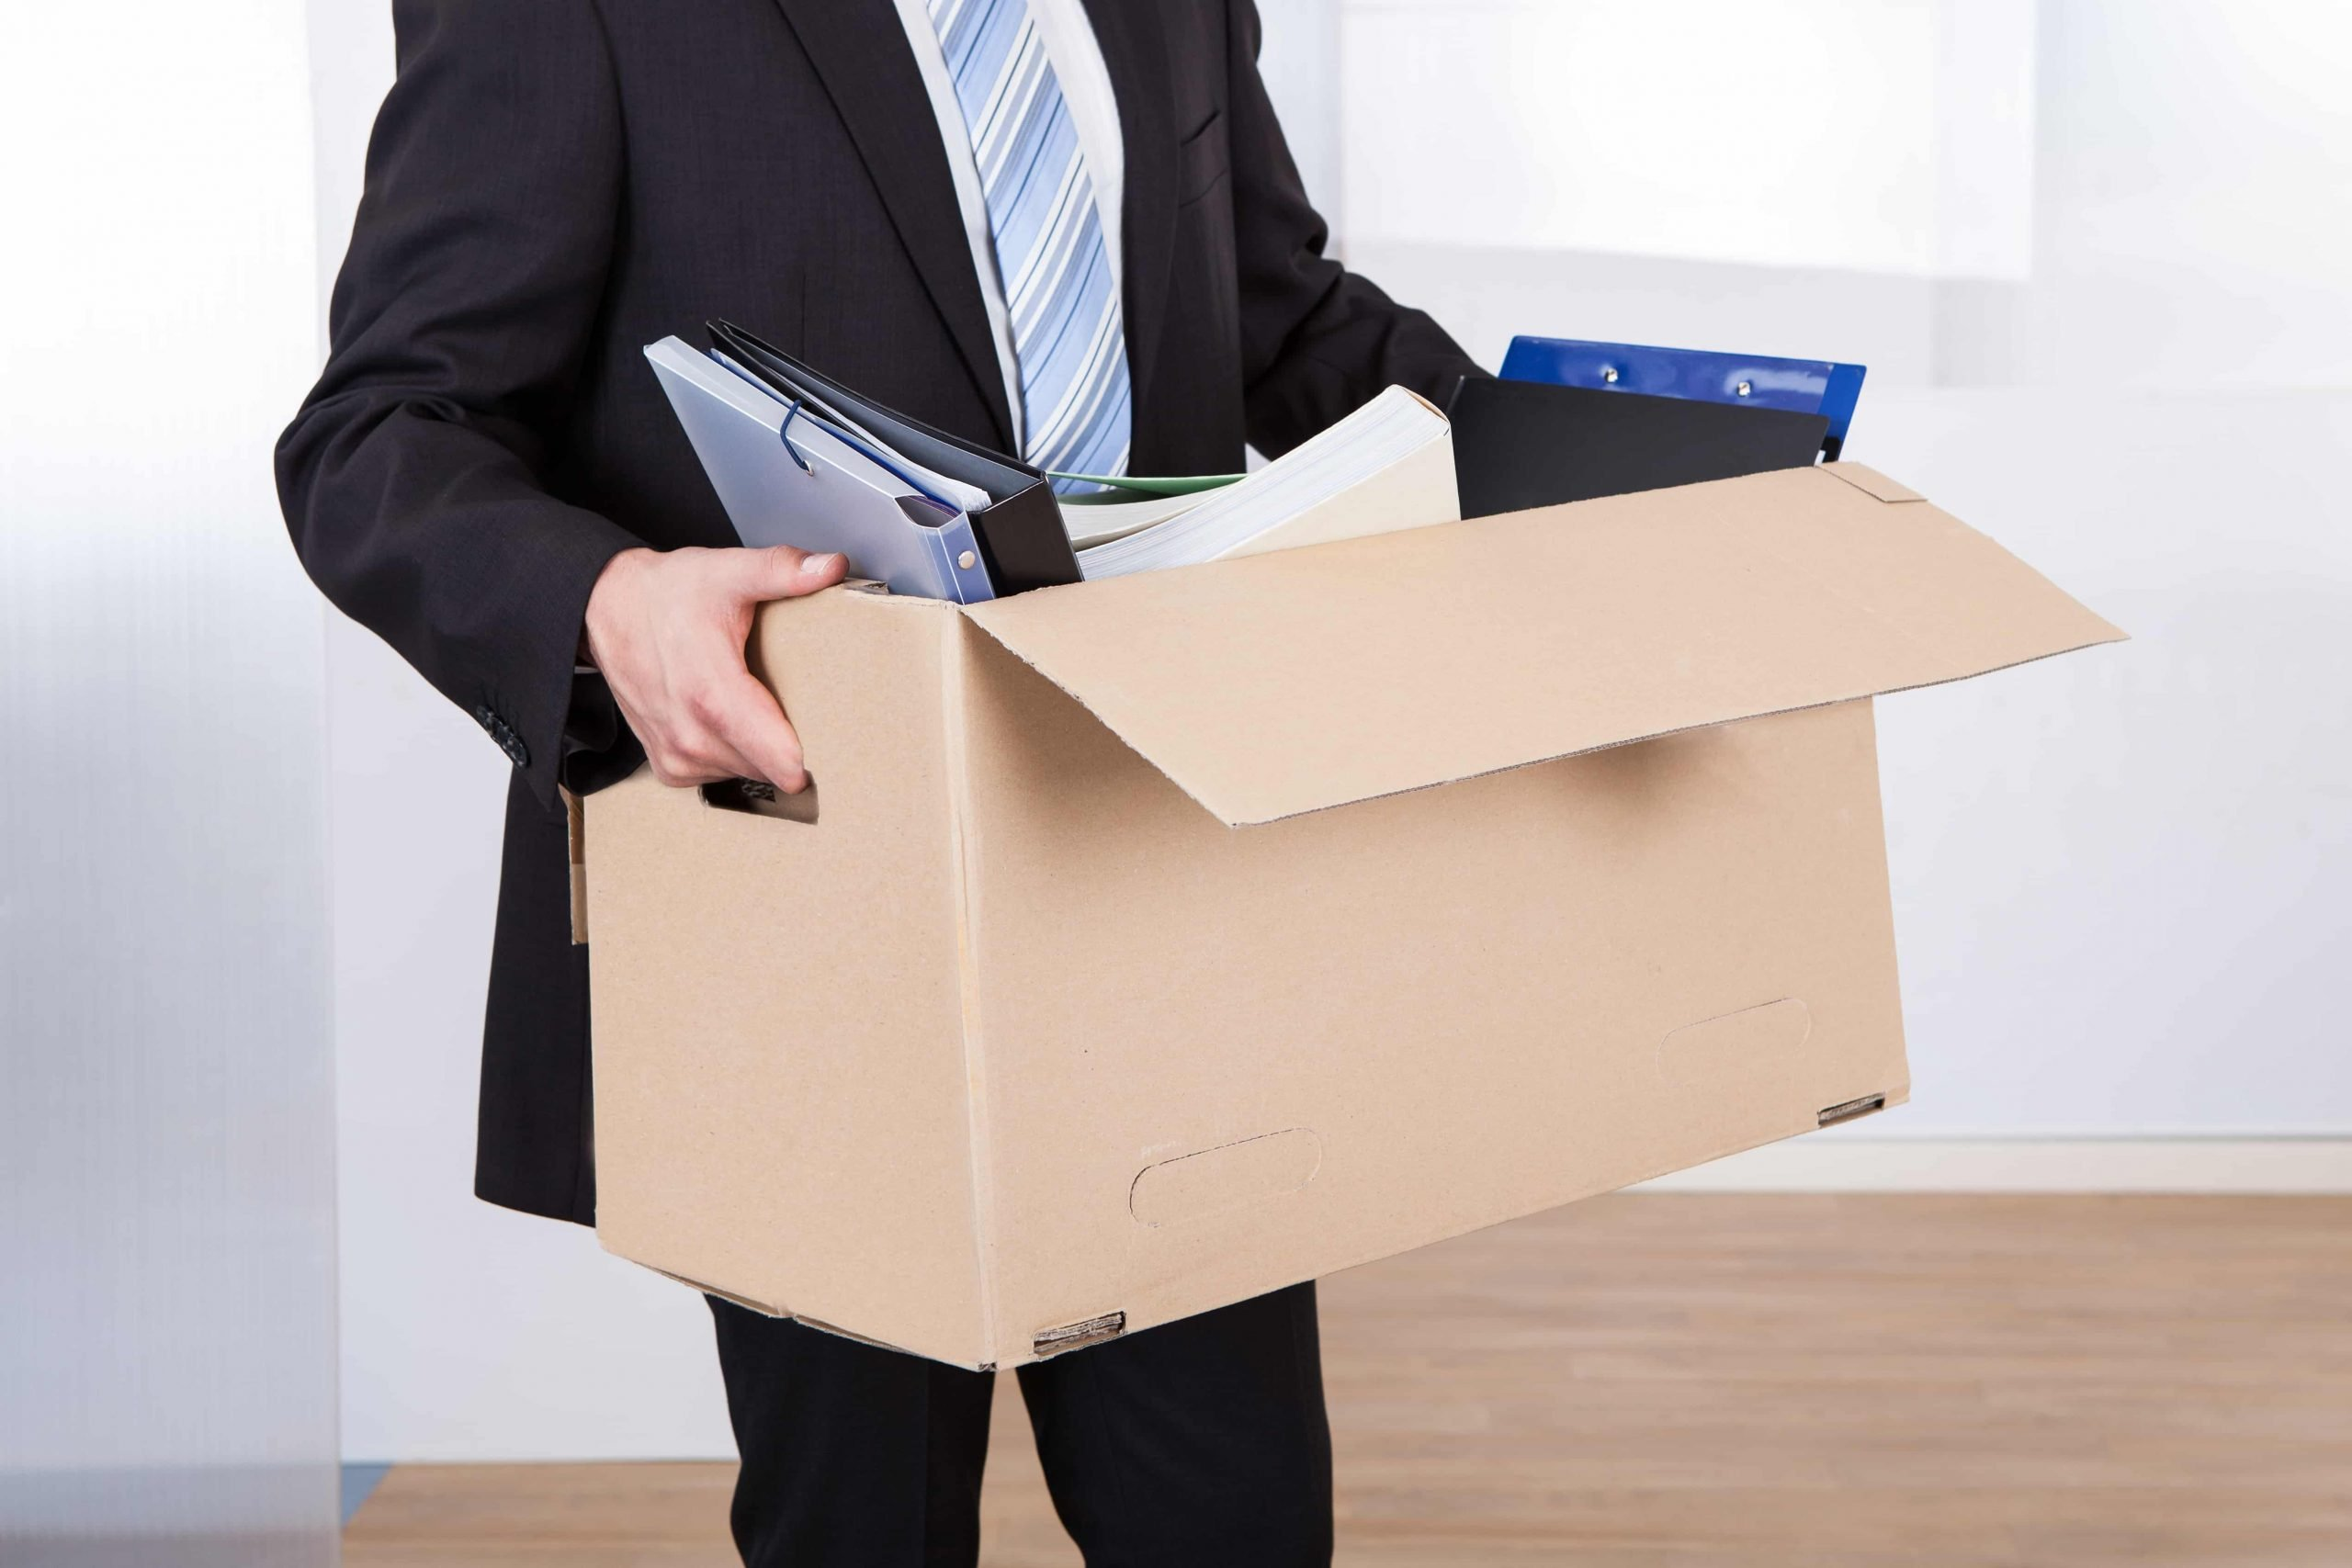 What Sort of Licensing and Insurance Do I Need for a Commercial Move?